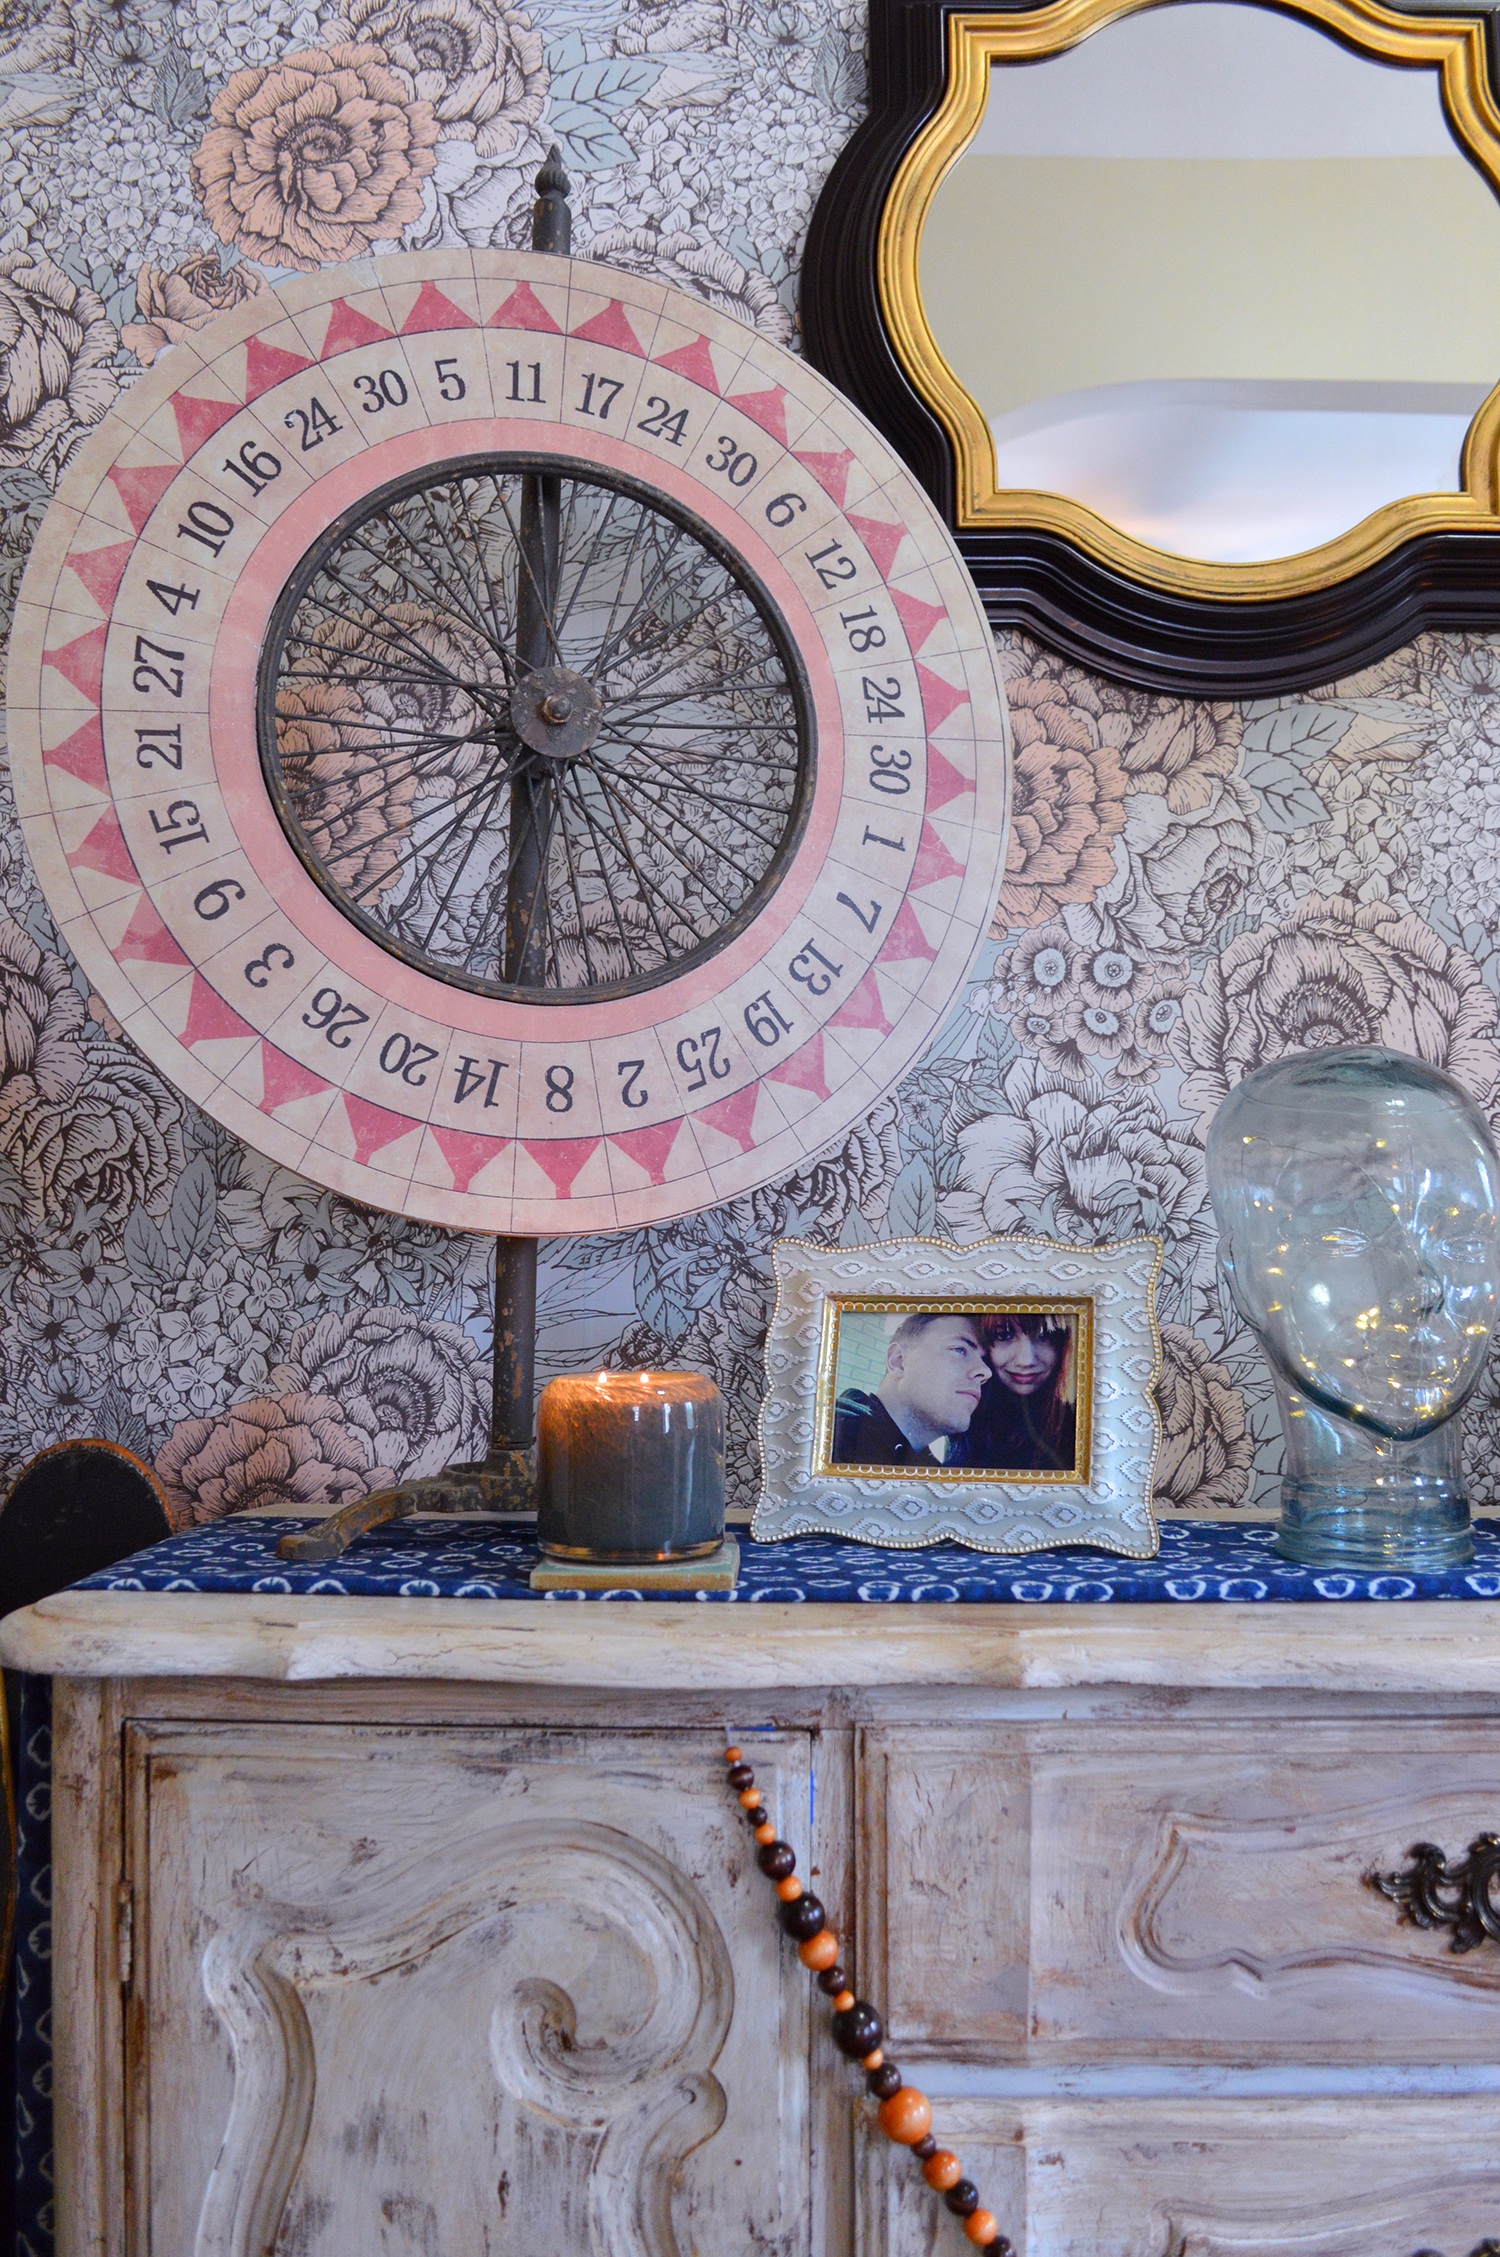 Oh Julia Ann Summer Entryway Home Tour with Patterned Removable Wallpaper and Chesapeake Bay Candles